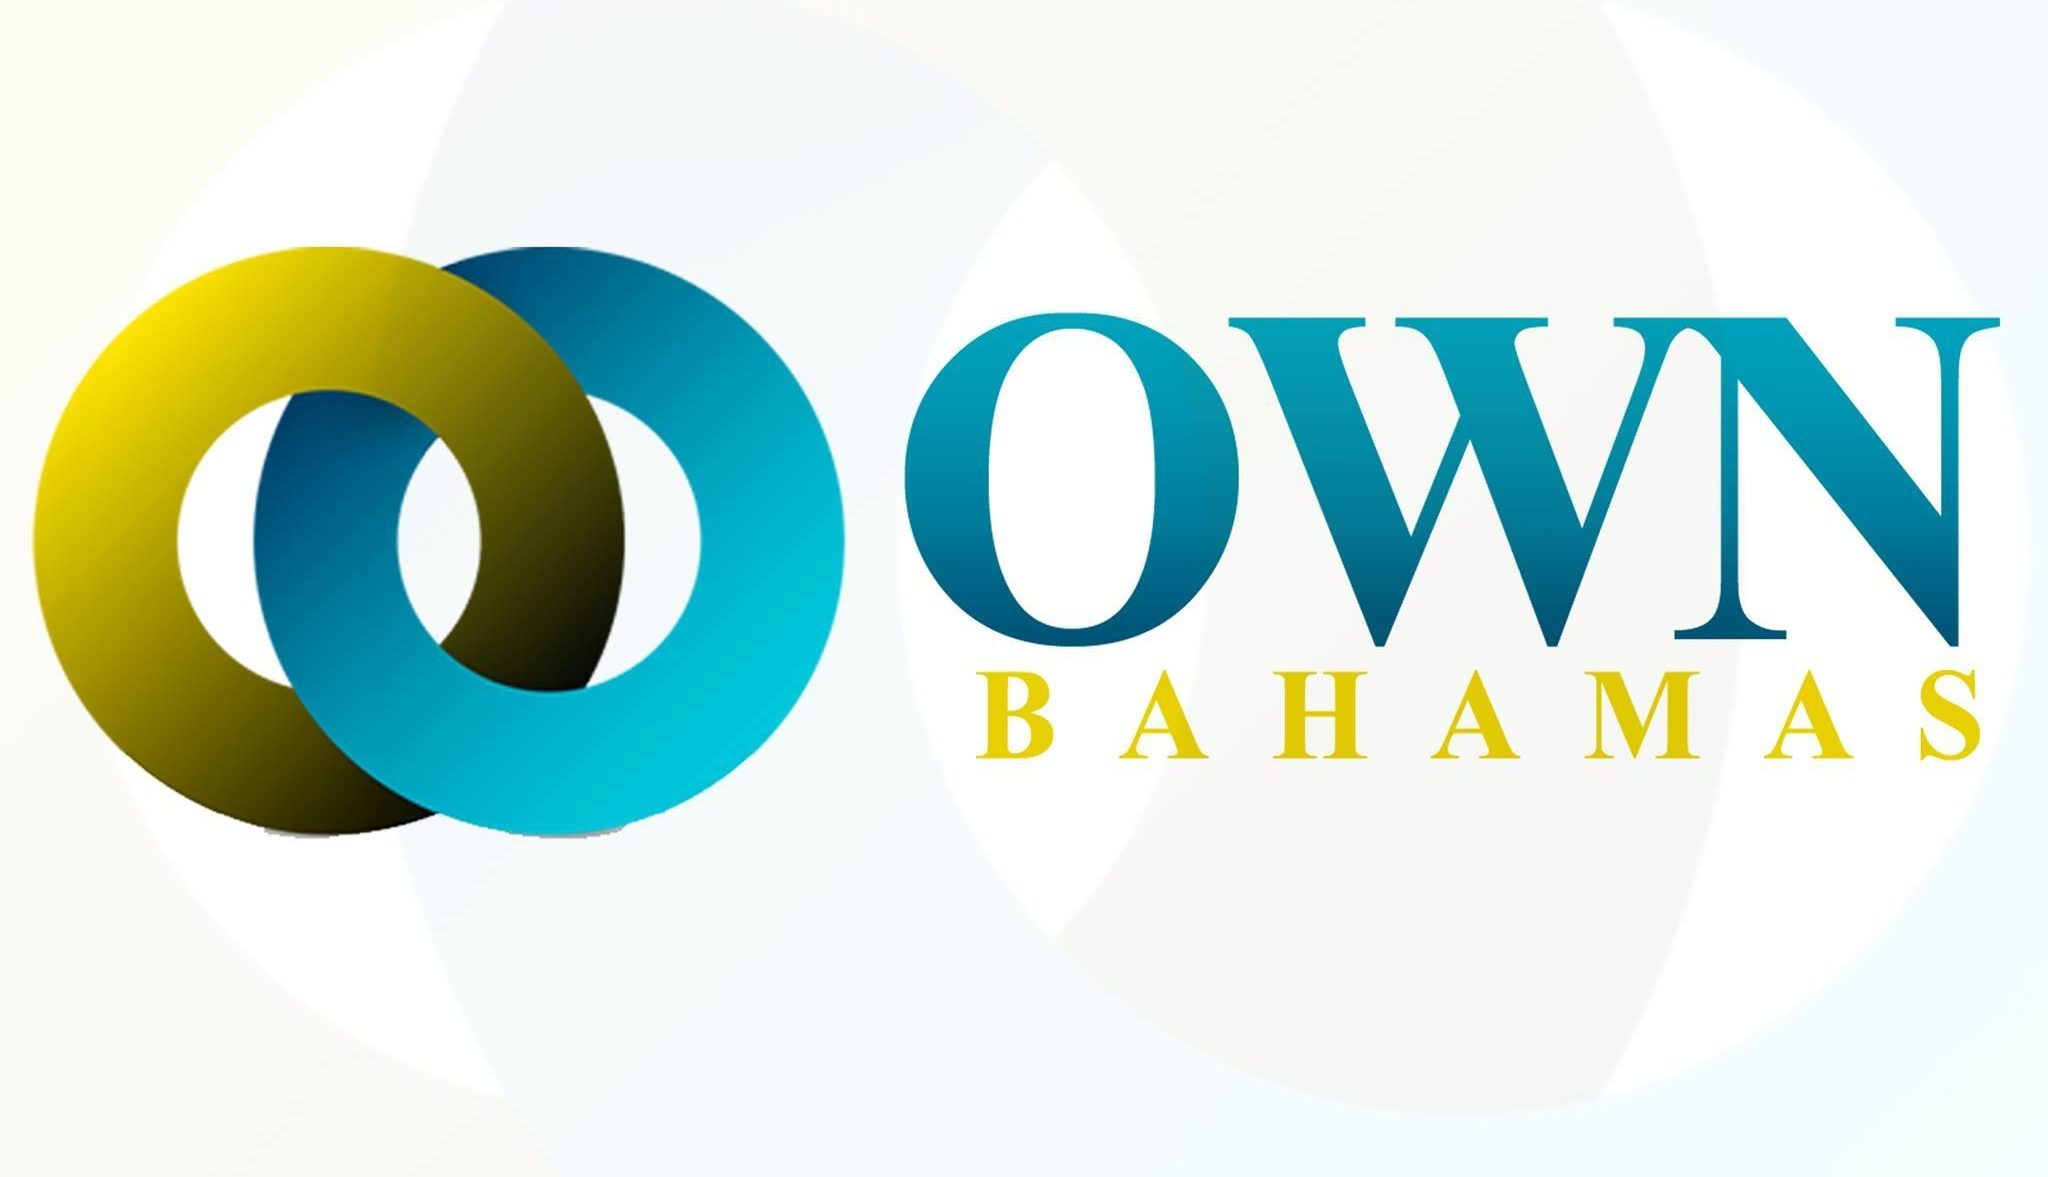 Own Bahamas Foundation conducting needs assessments with entrepreneurs affected by Hurricane Dorian